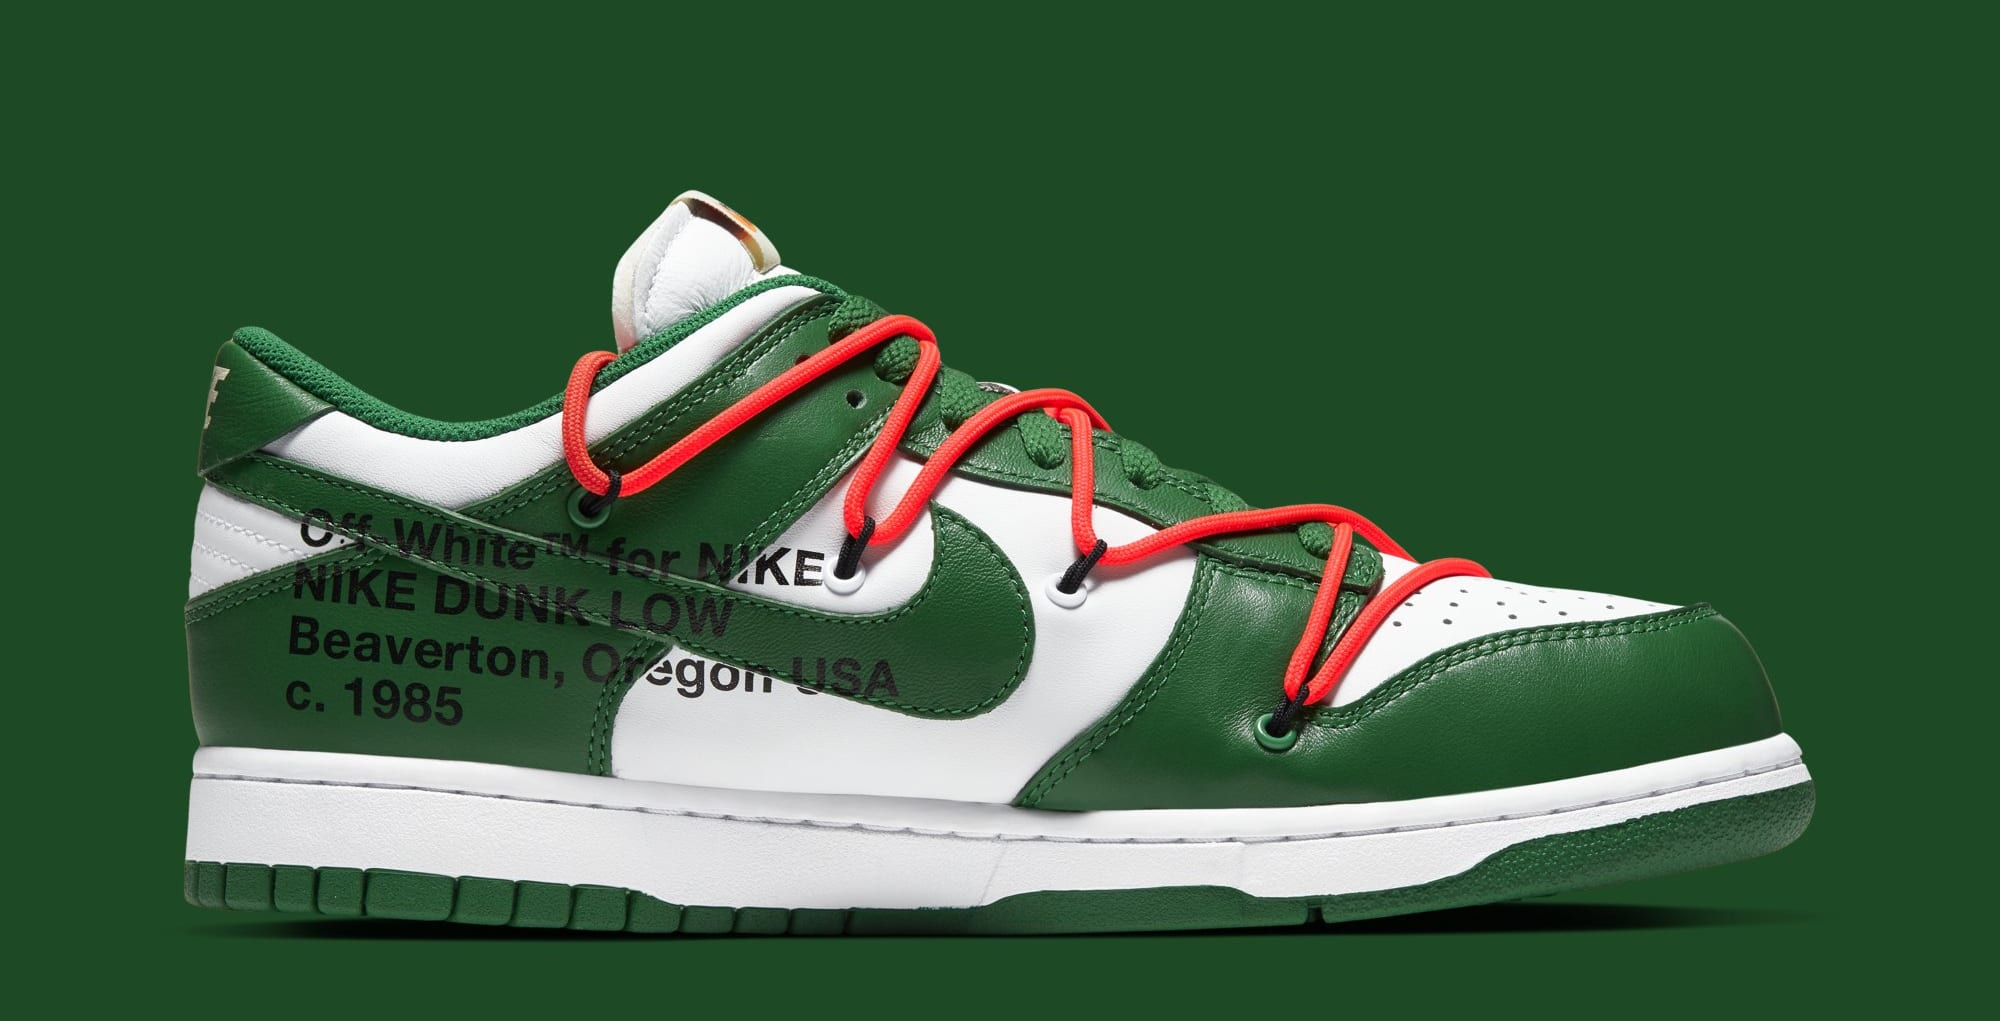 Off-White x Nike Dunk Low 'White/Pine Green' CT0856-100 (Medial)